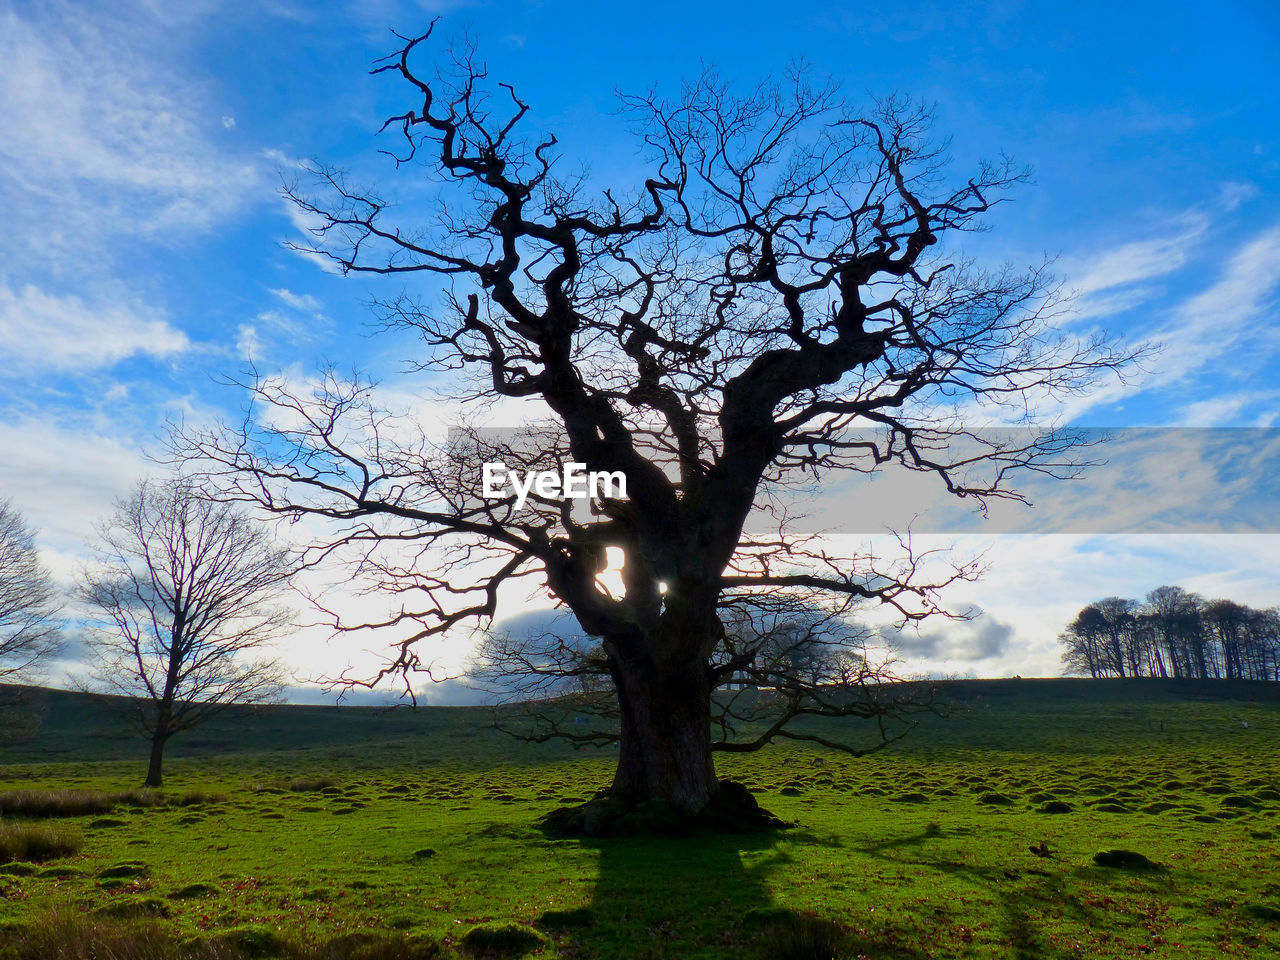 VIEW OF BARE TREE ON FIELD